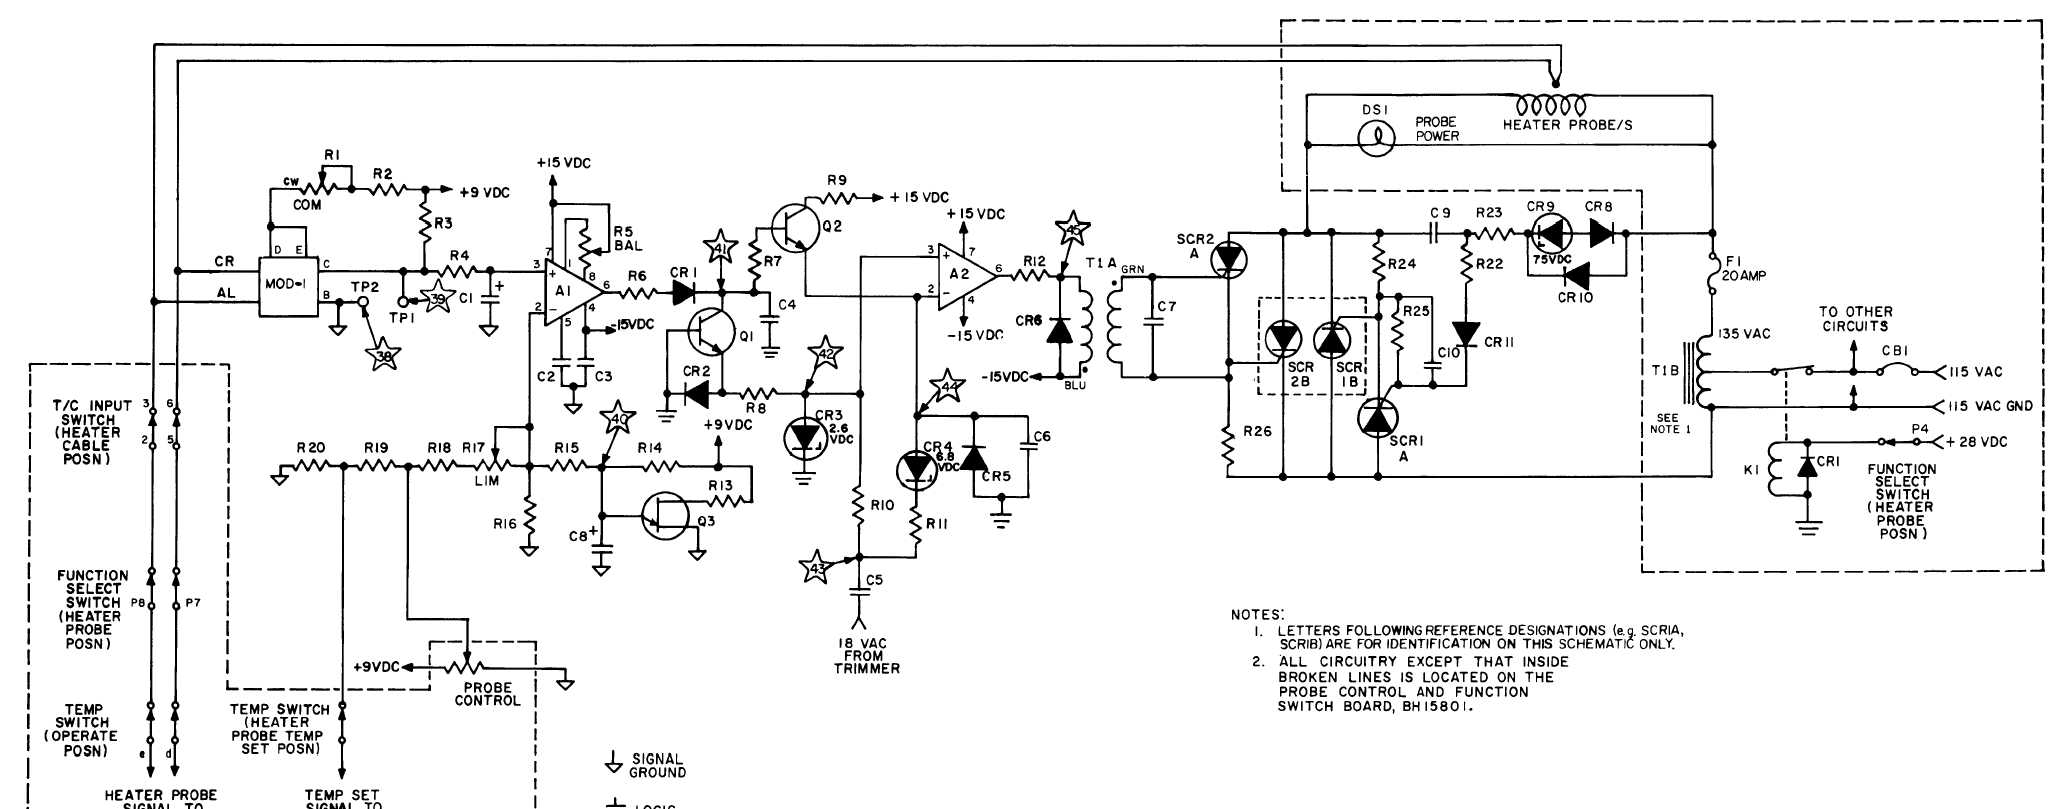 TM 55 4920 401 13P 257 on solar battery charger circuit diagram